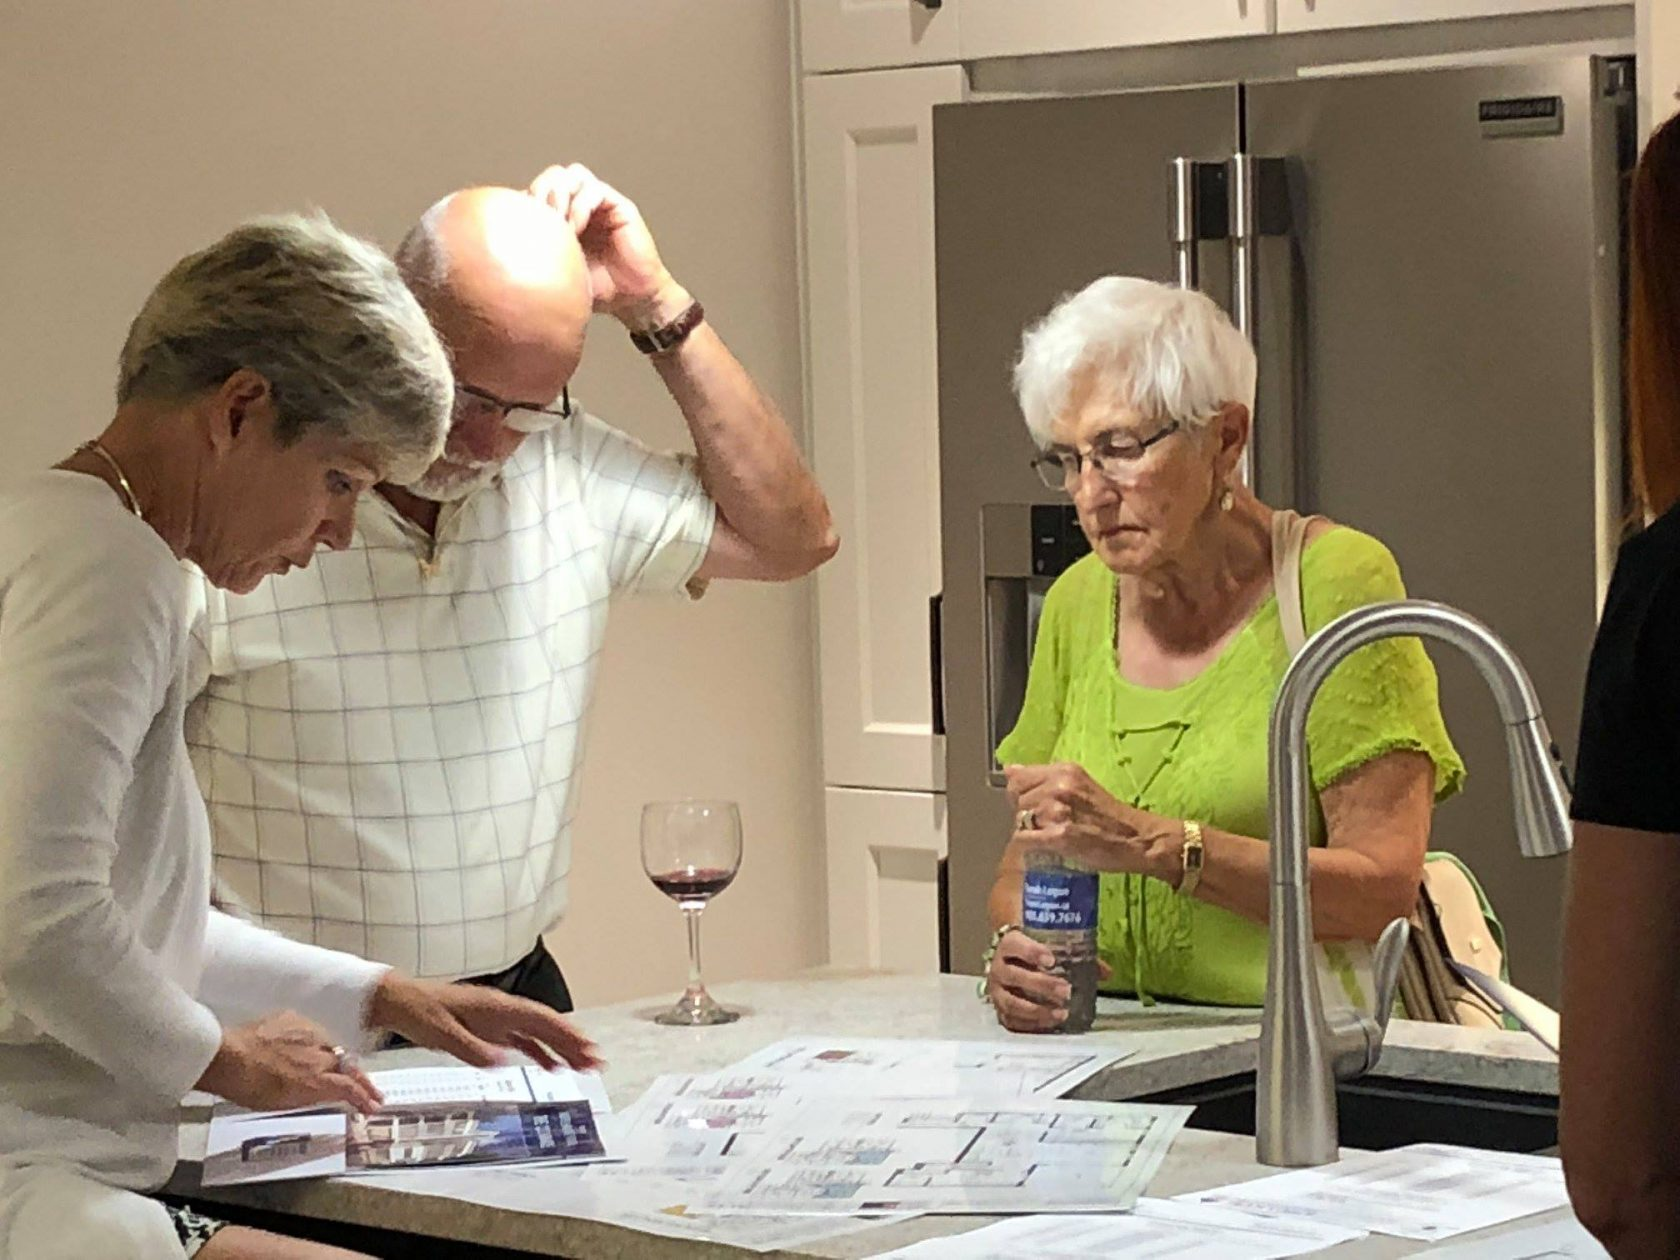 Reviewing floor plans at the Colonnade open house | Team Logue Burlington Real Estate